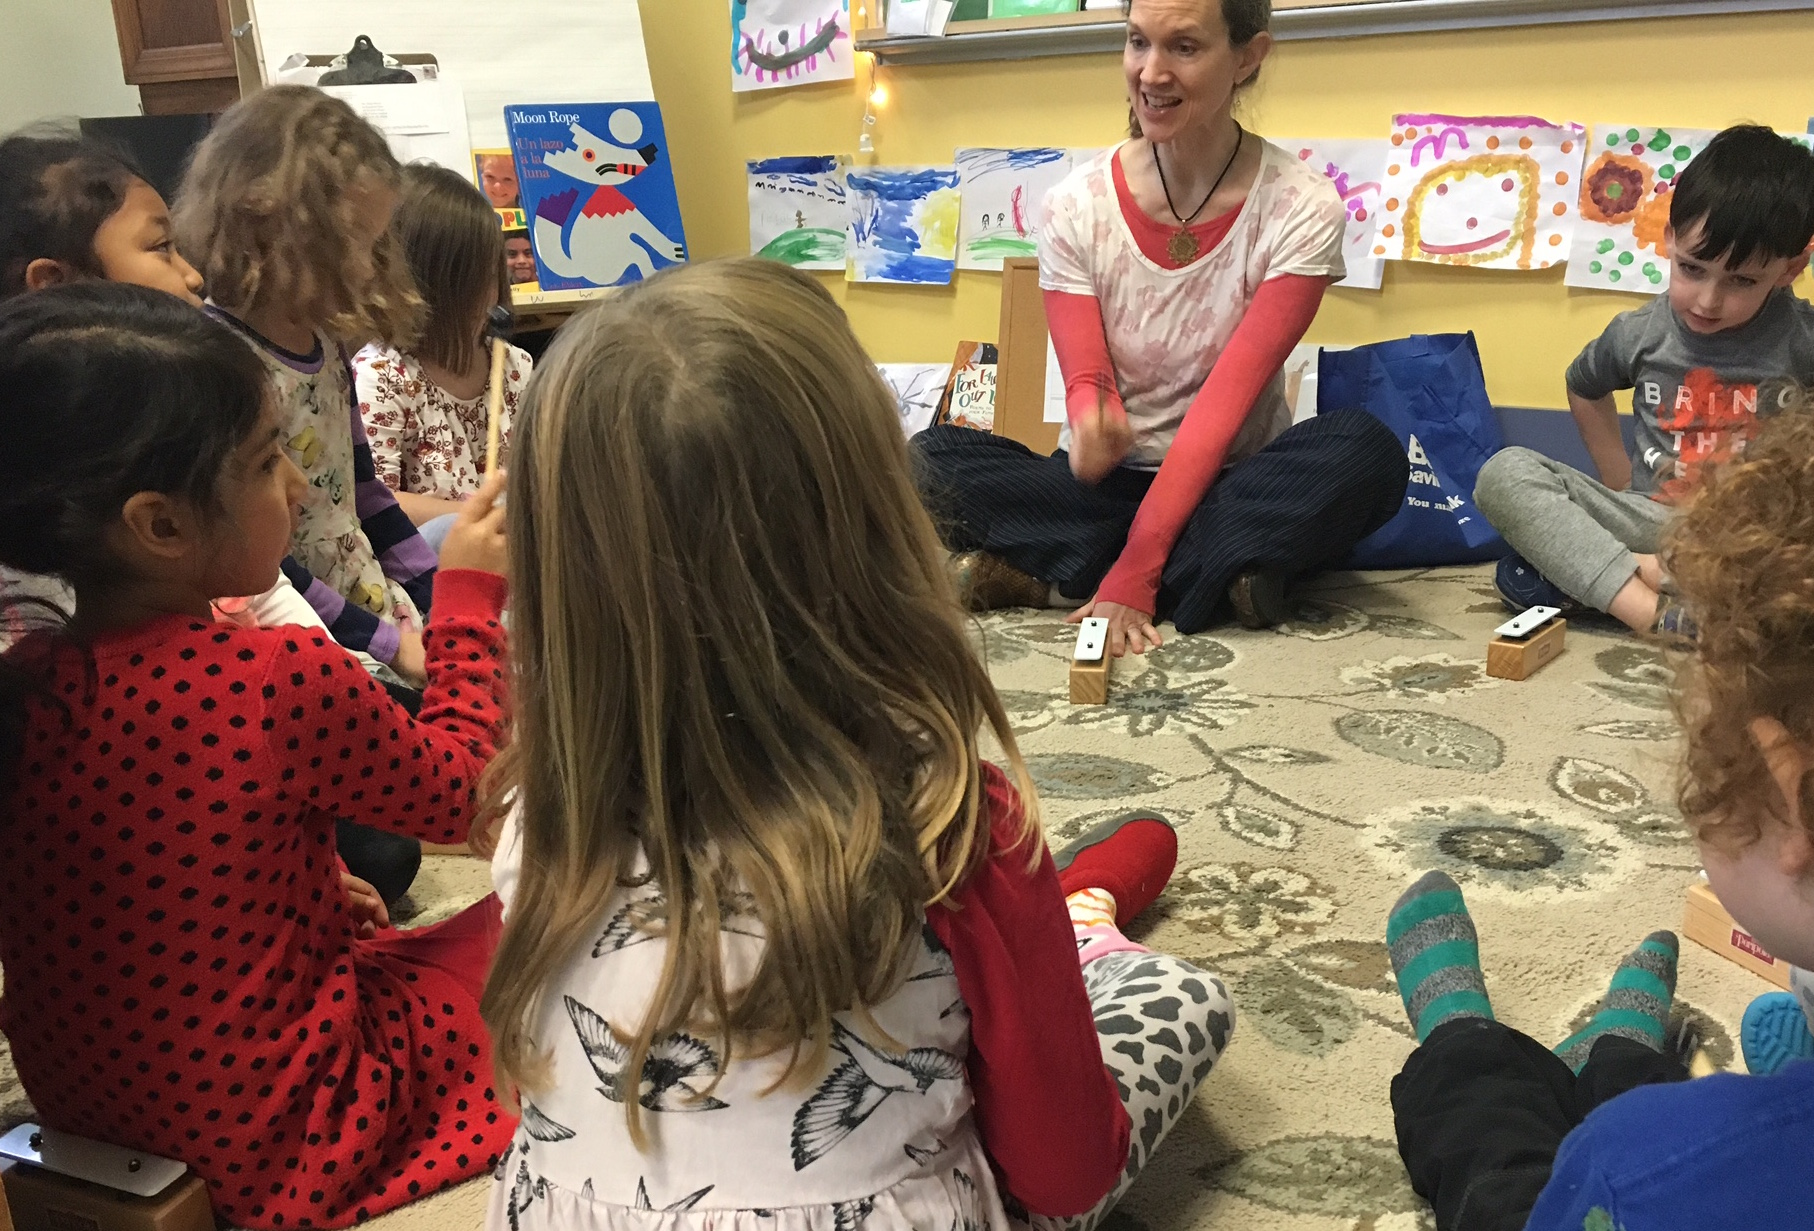 Kindergarten students explore mindfulness through rhythmic percussion.